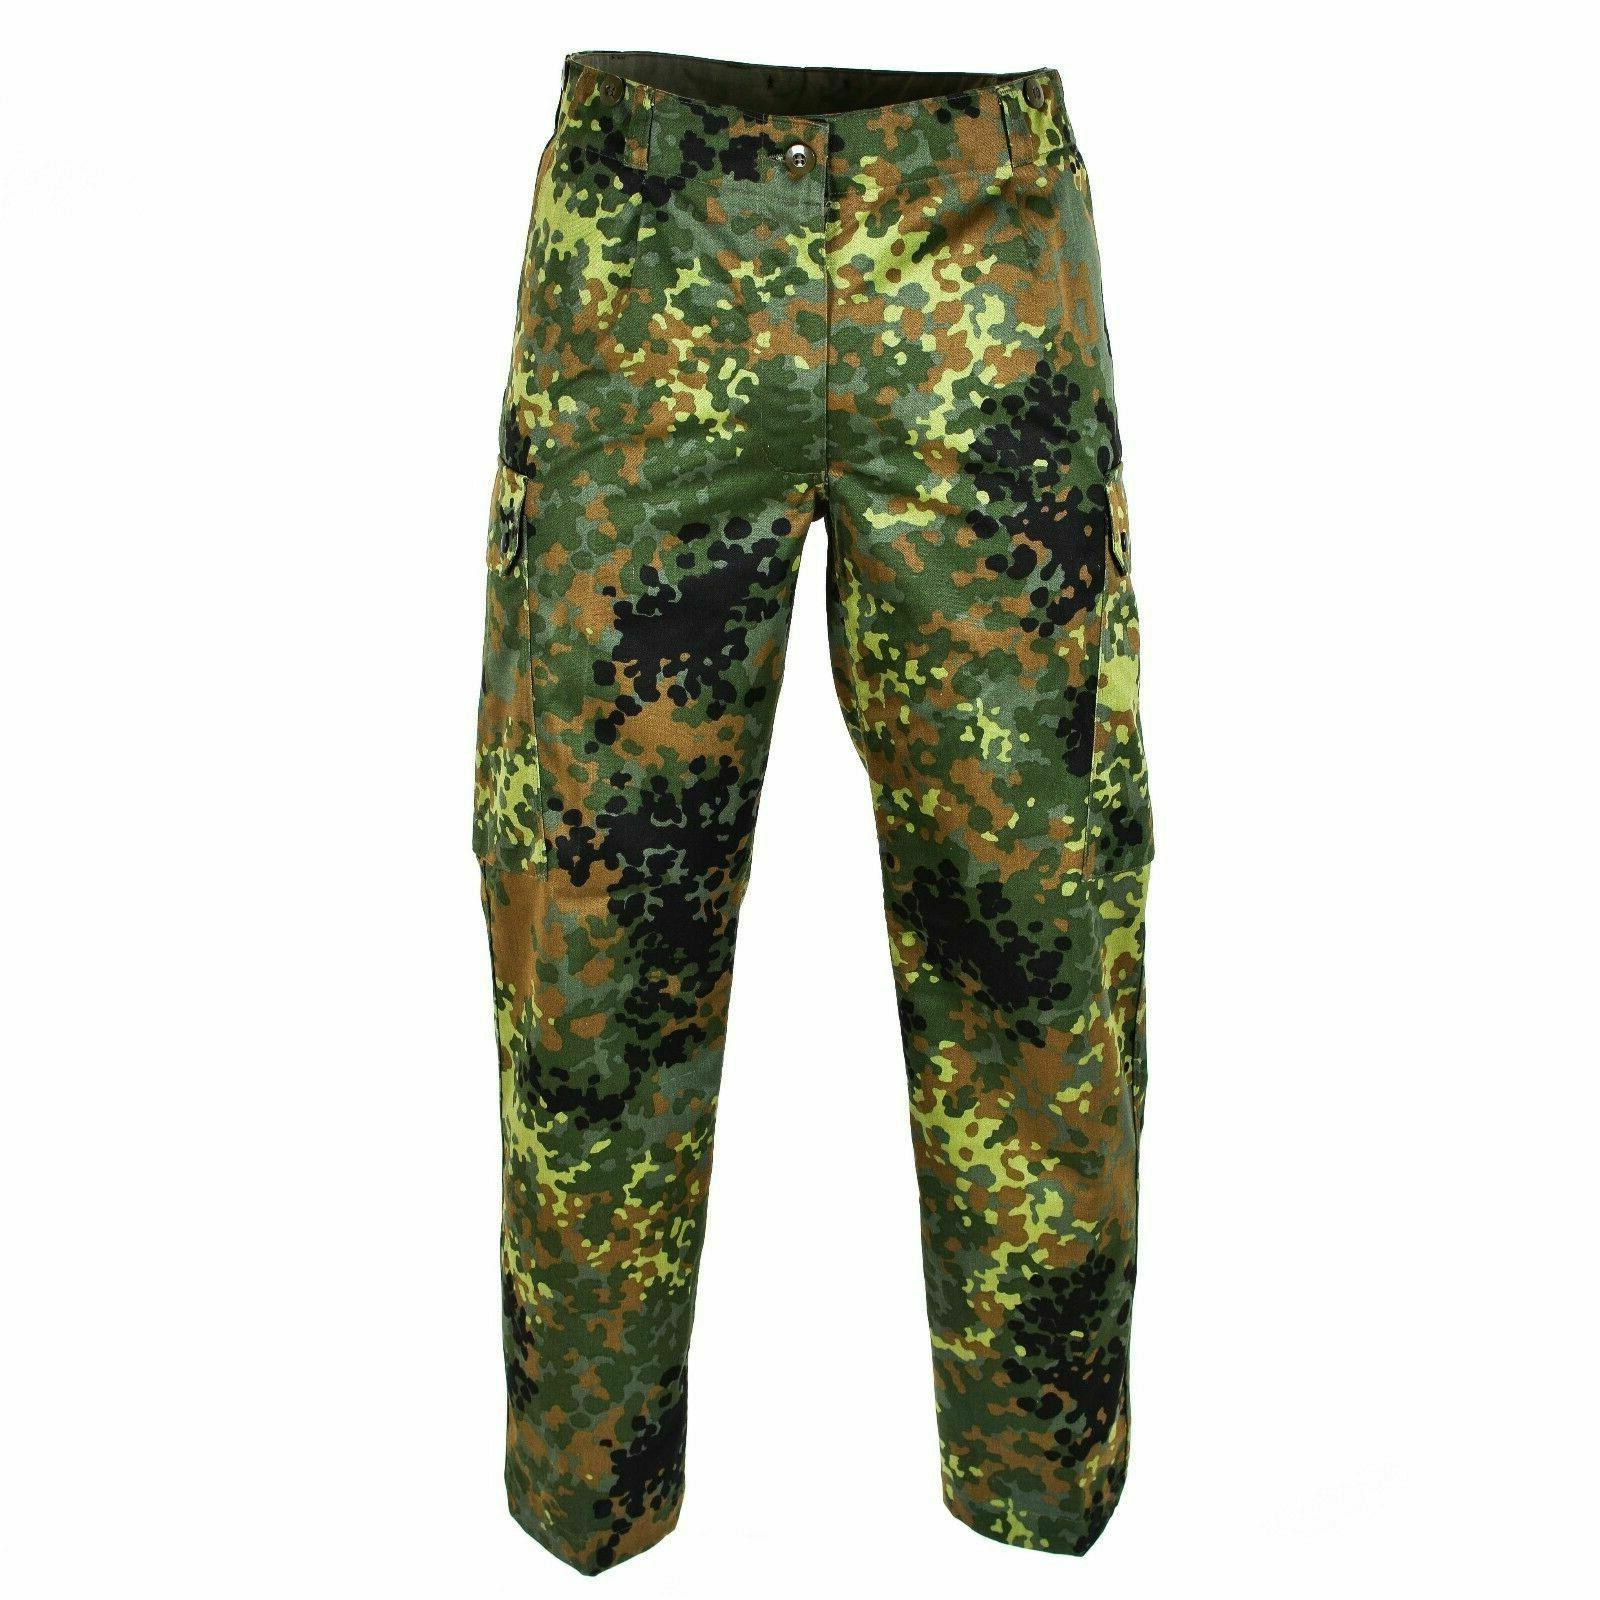 GERMAN CAMOUFLAGE MILITARY BDU POCKET FATIGUE TROUSERS